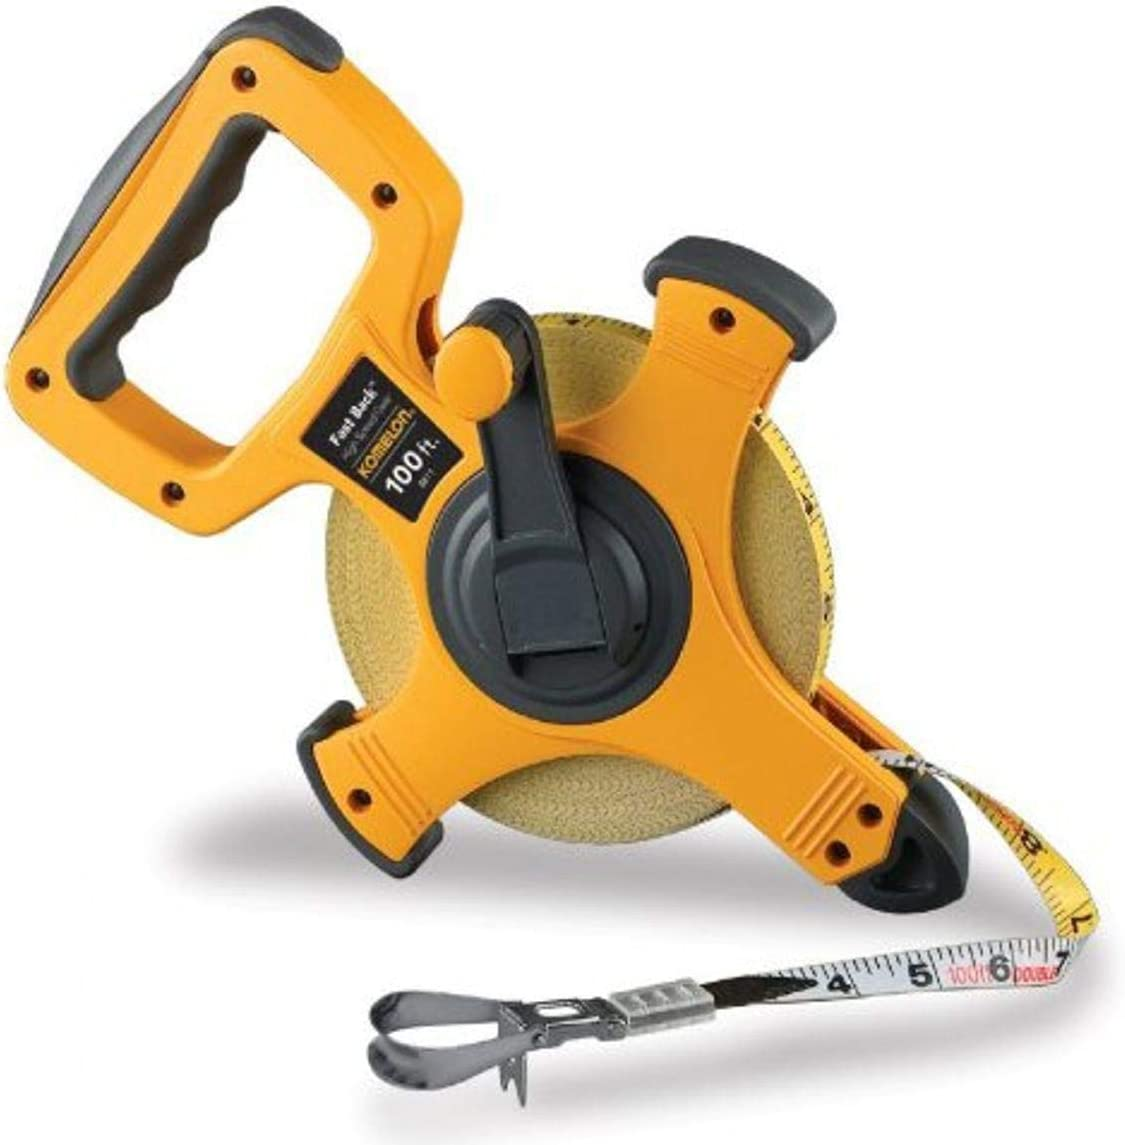 Komelon 8811 famous Fast Back Open Reel N Tape Long Measure with Safety and trust Double